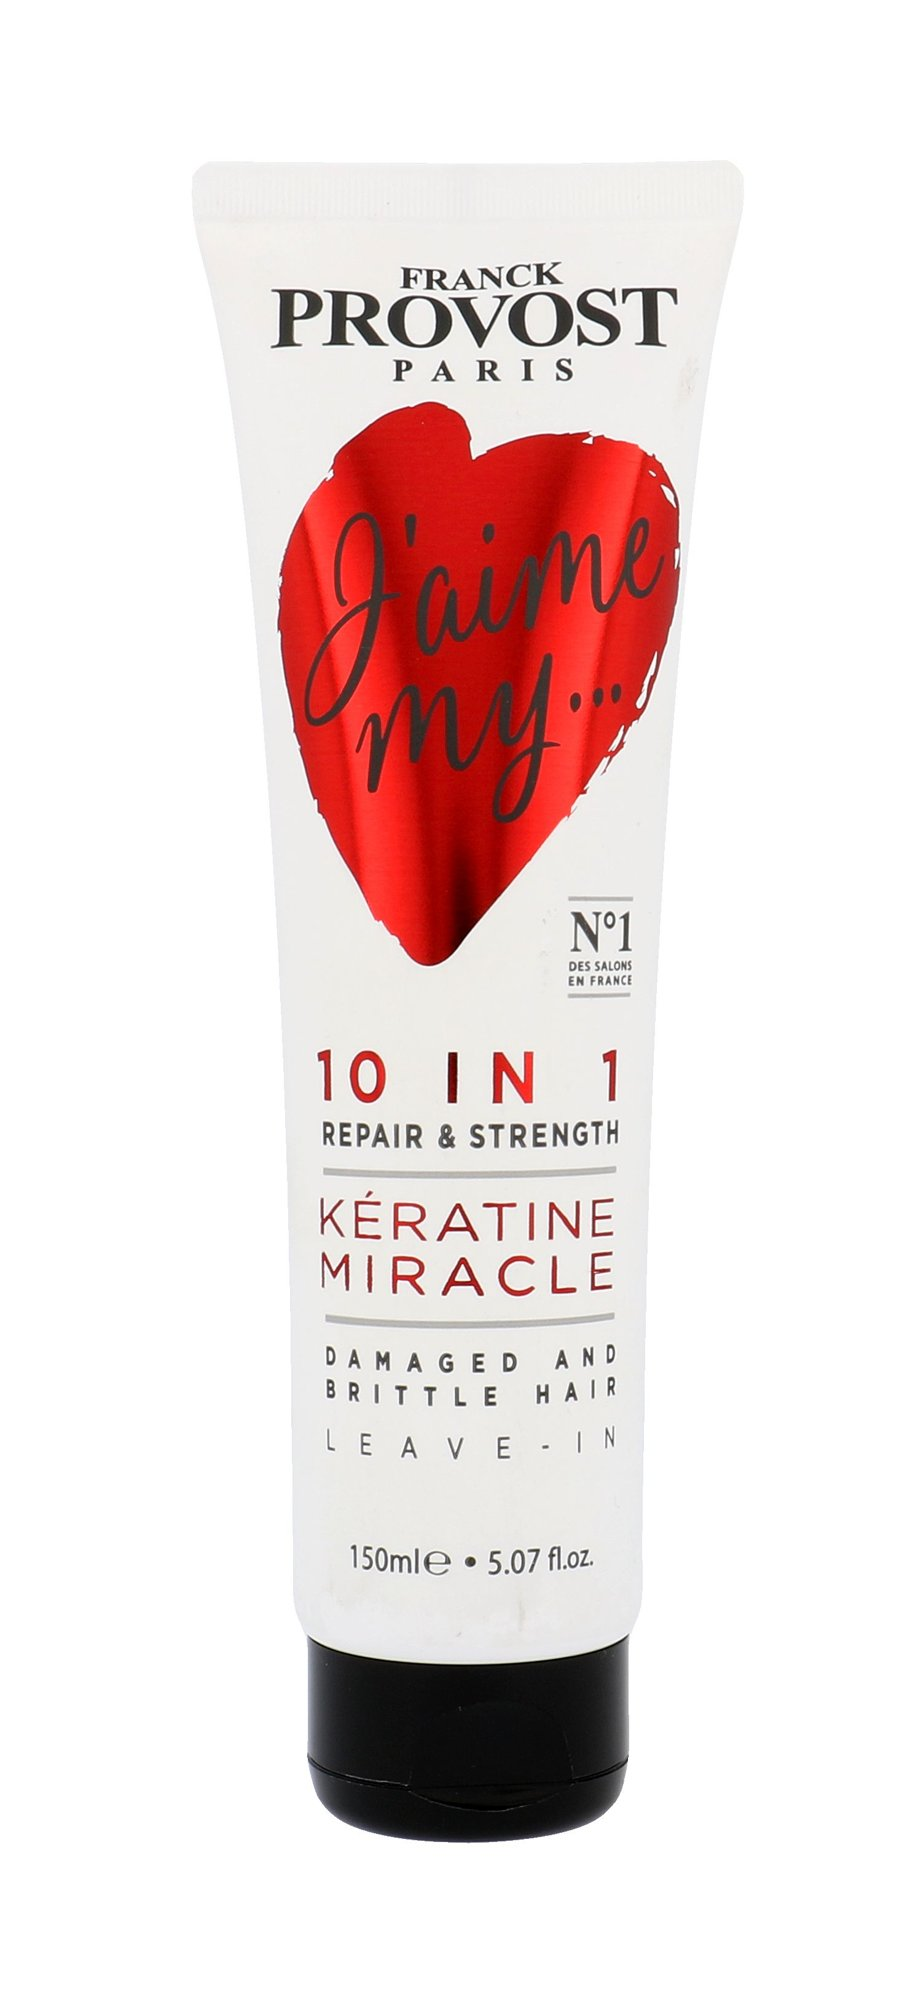 FRANCK PROVOST PARIS J´Aime My... Kératine Miracle 10 In 1 Treatment Cosmetic 150ml